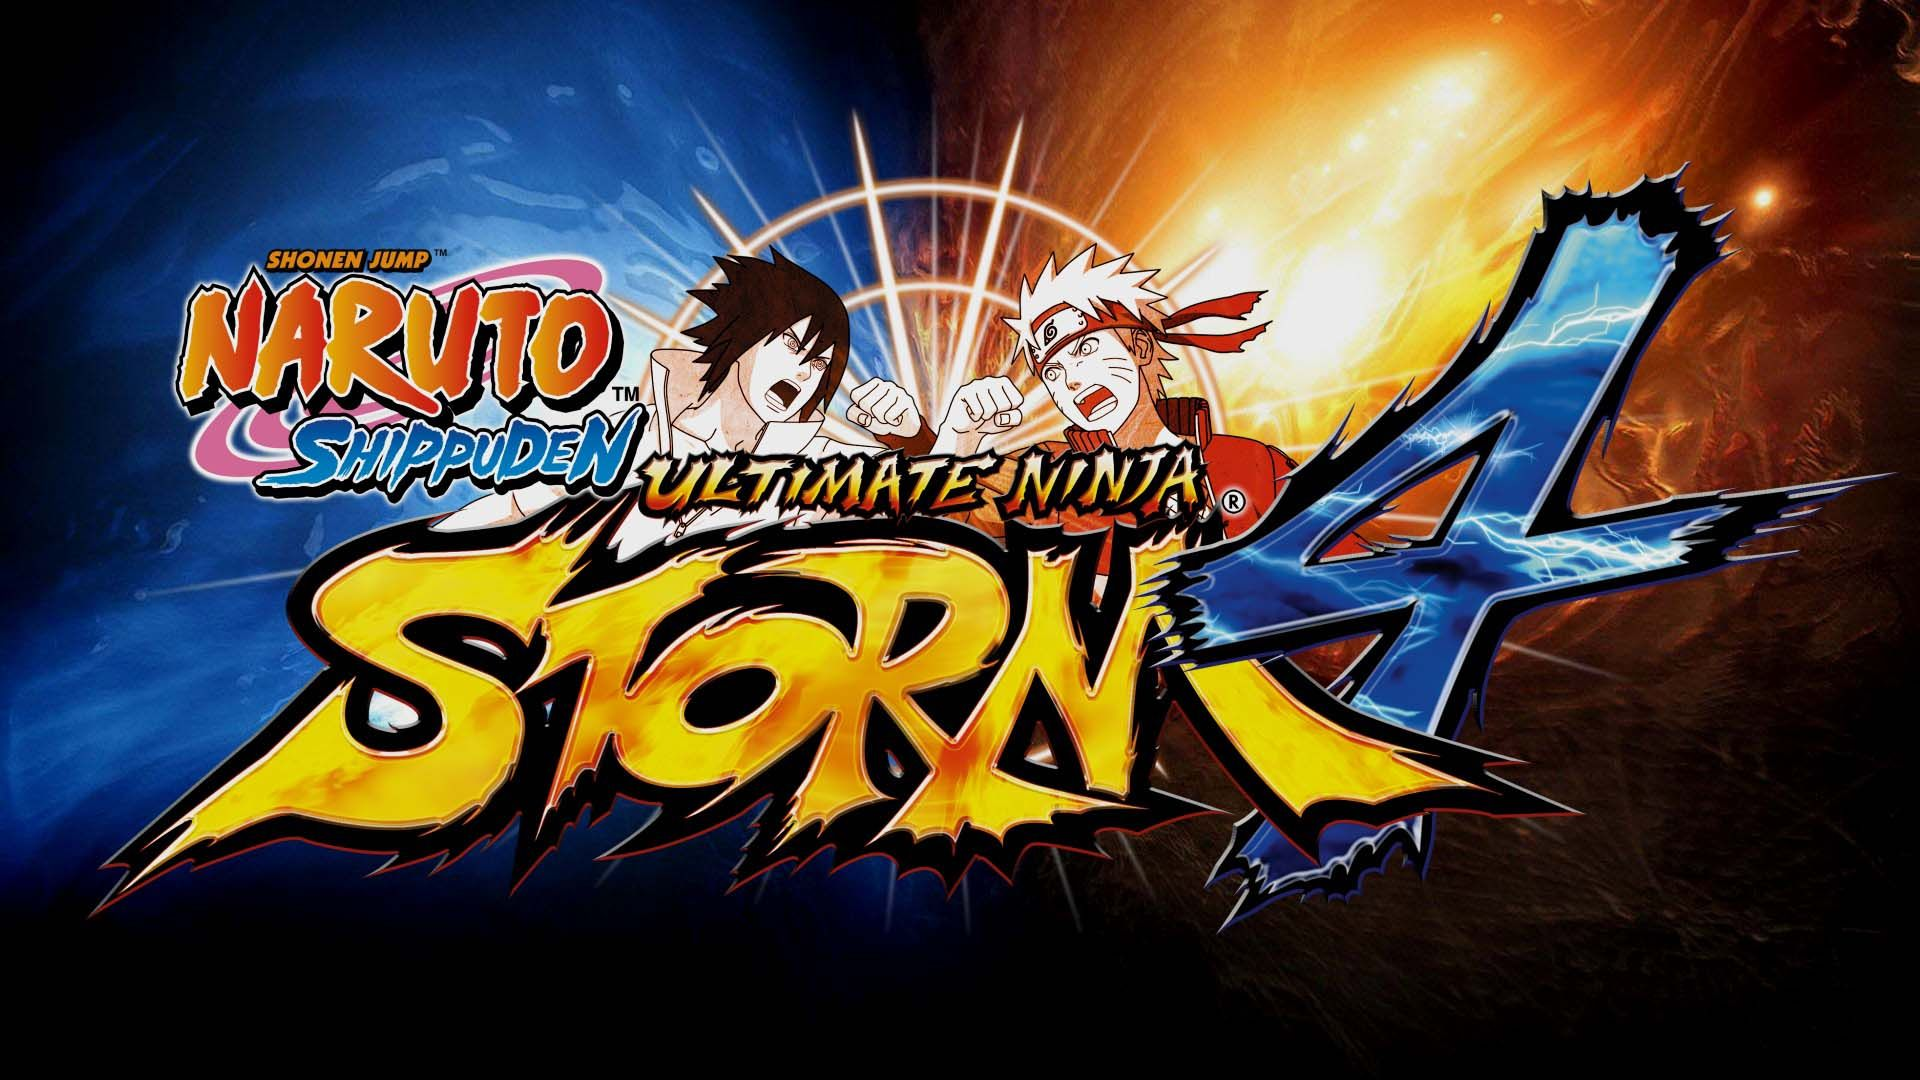 Naruto Shippuden Ultimate Ninja Storm 4 Pc Game Free Download With Full Version From Online To Here Enjoy To Download And Naruto Shippuden Naruto Naruto Games